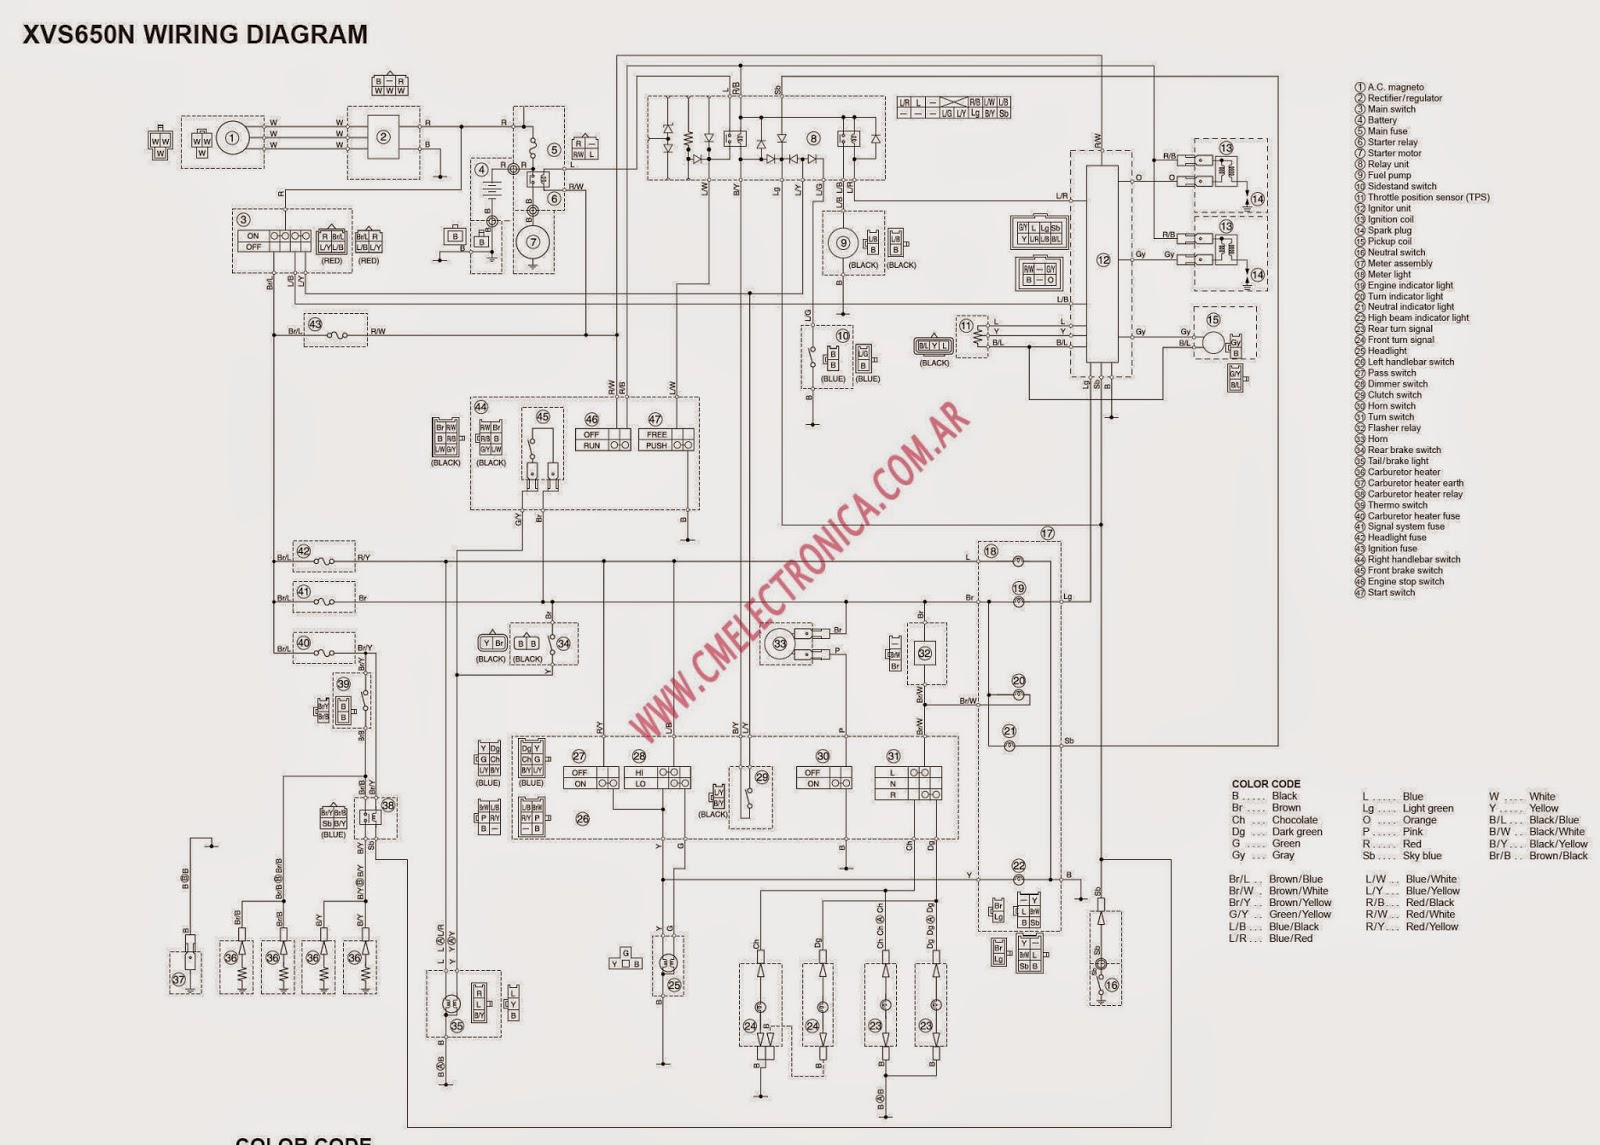 medium resolution of the chop shop xvs650 wiring diagram yamaha dt400 wiring diagram this is a wiring diagram for